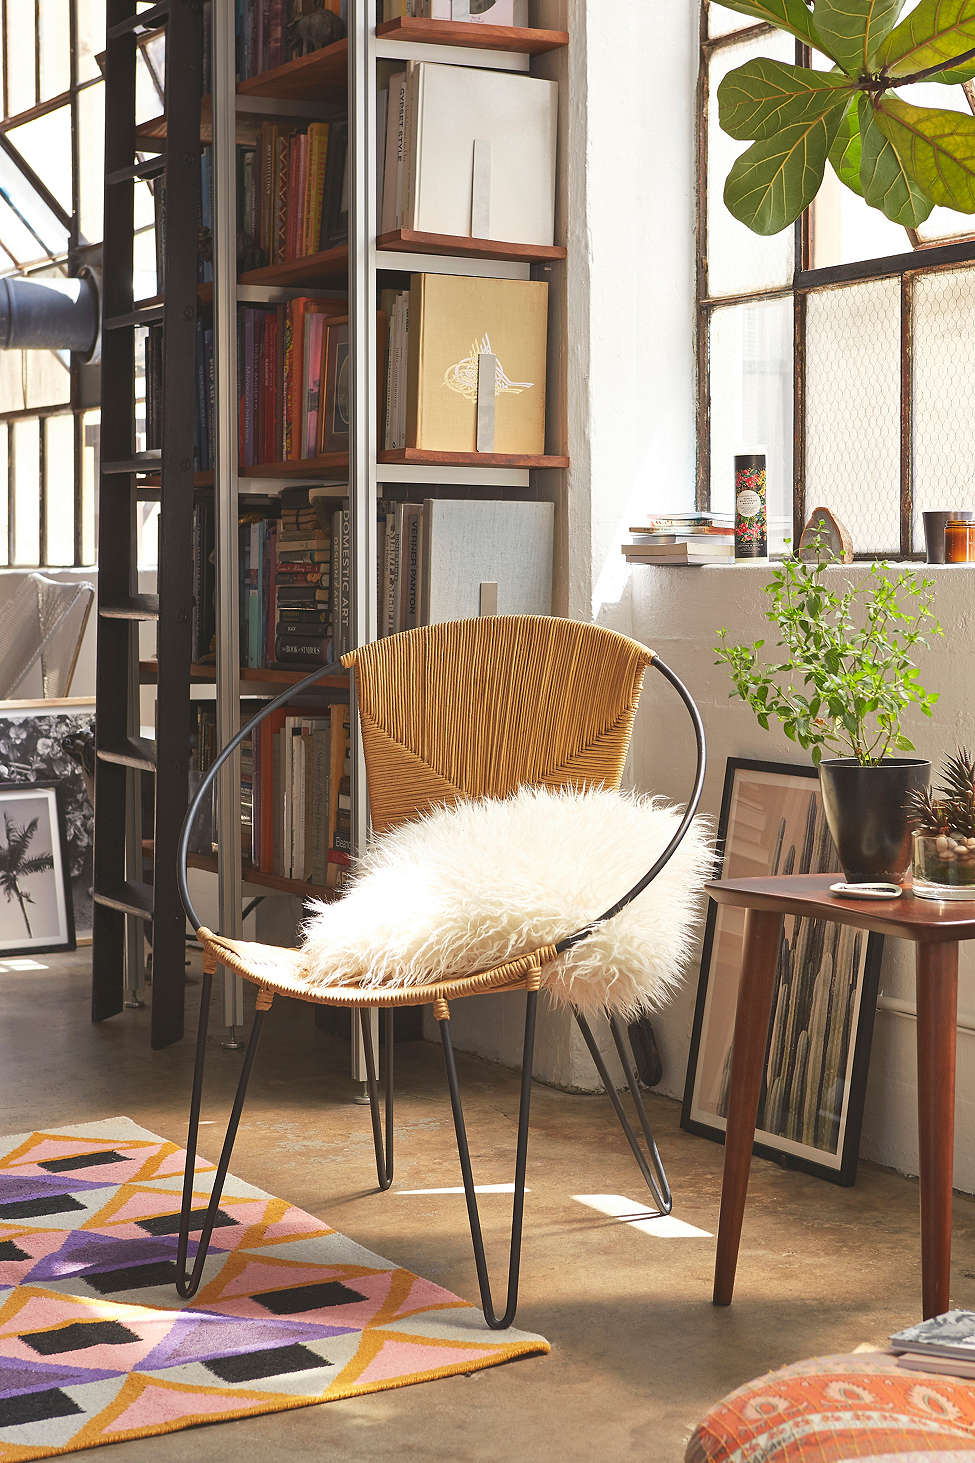 accent chair swivel que es en español 12 seriously drool-worthy chairs